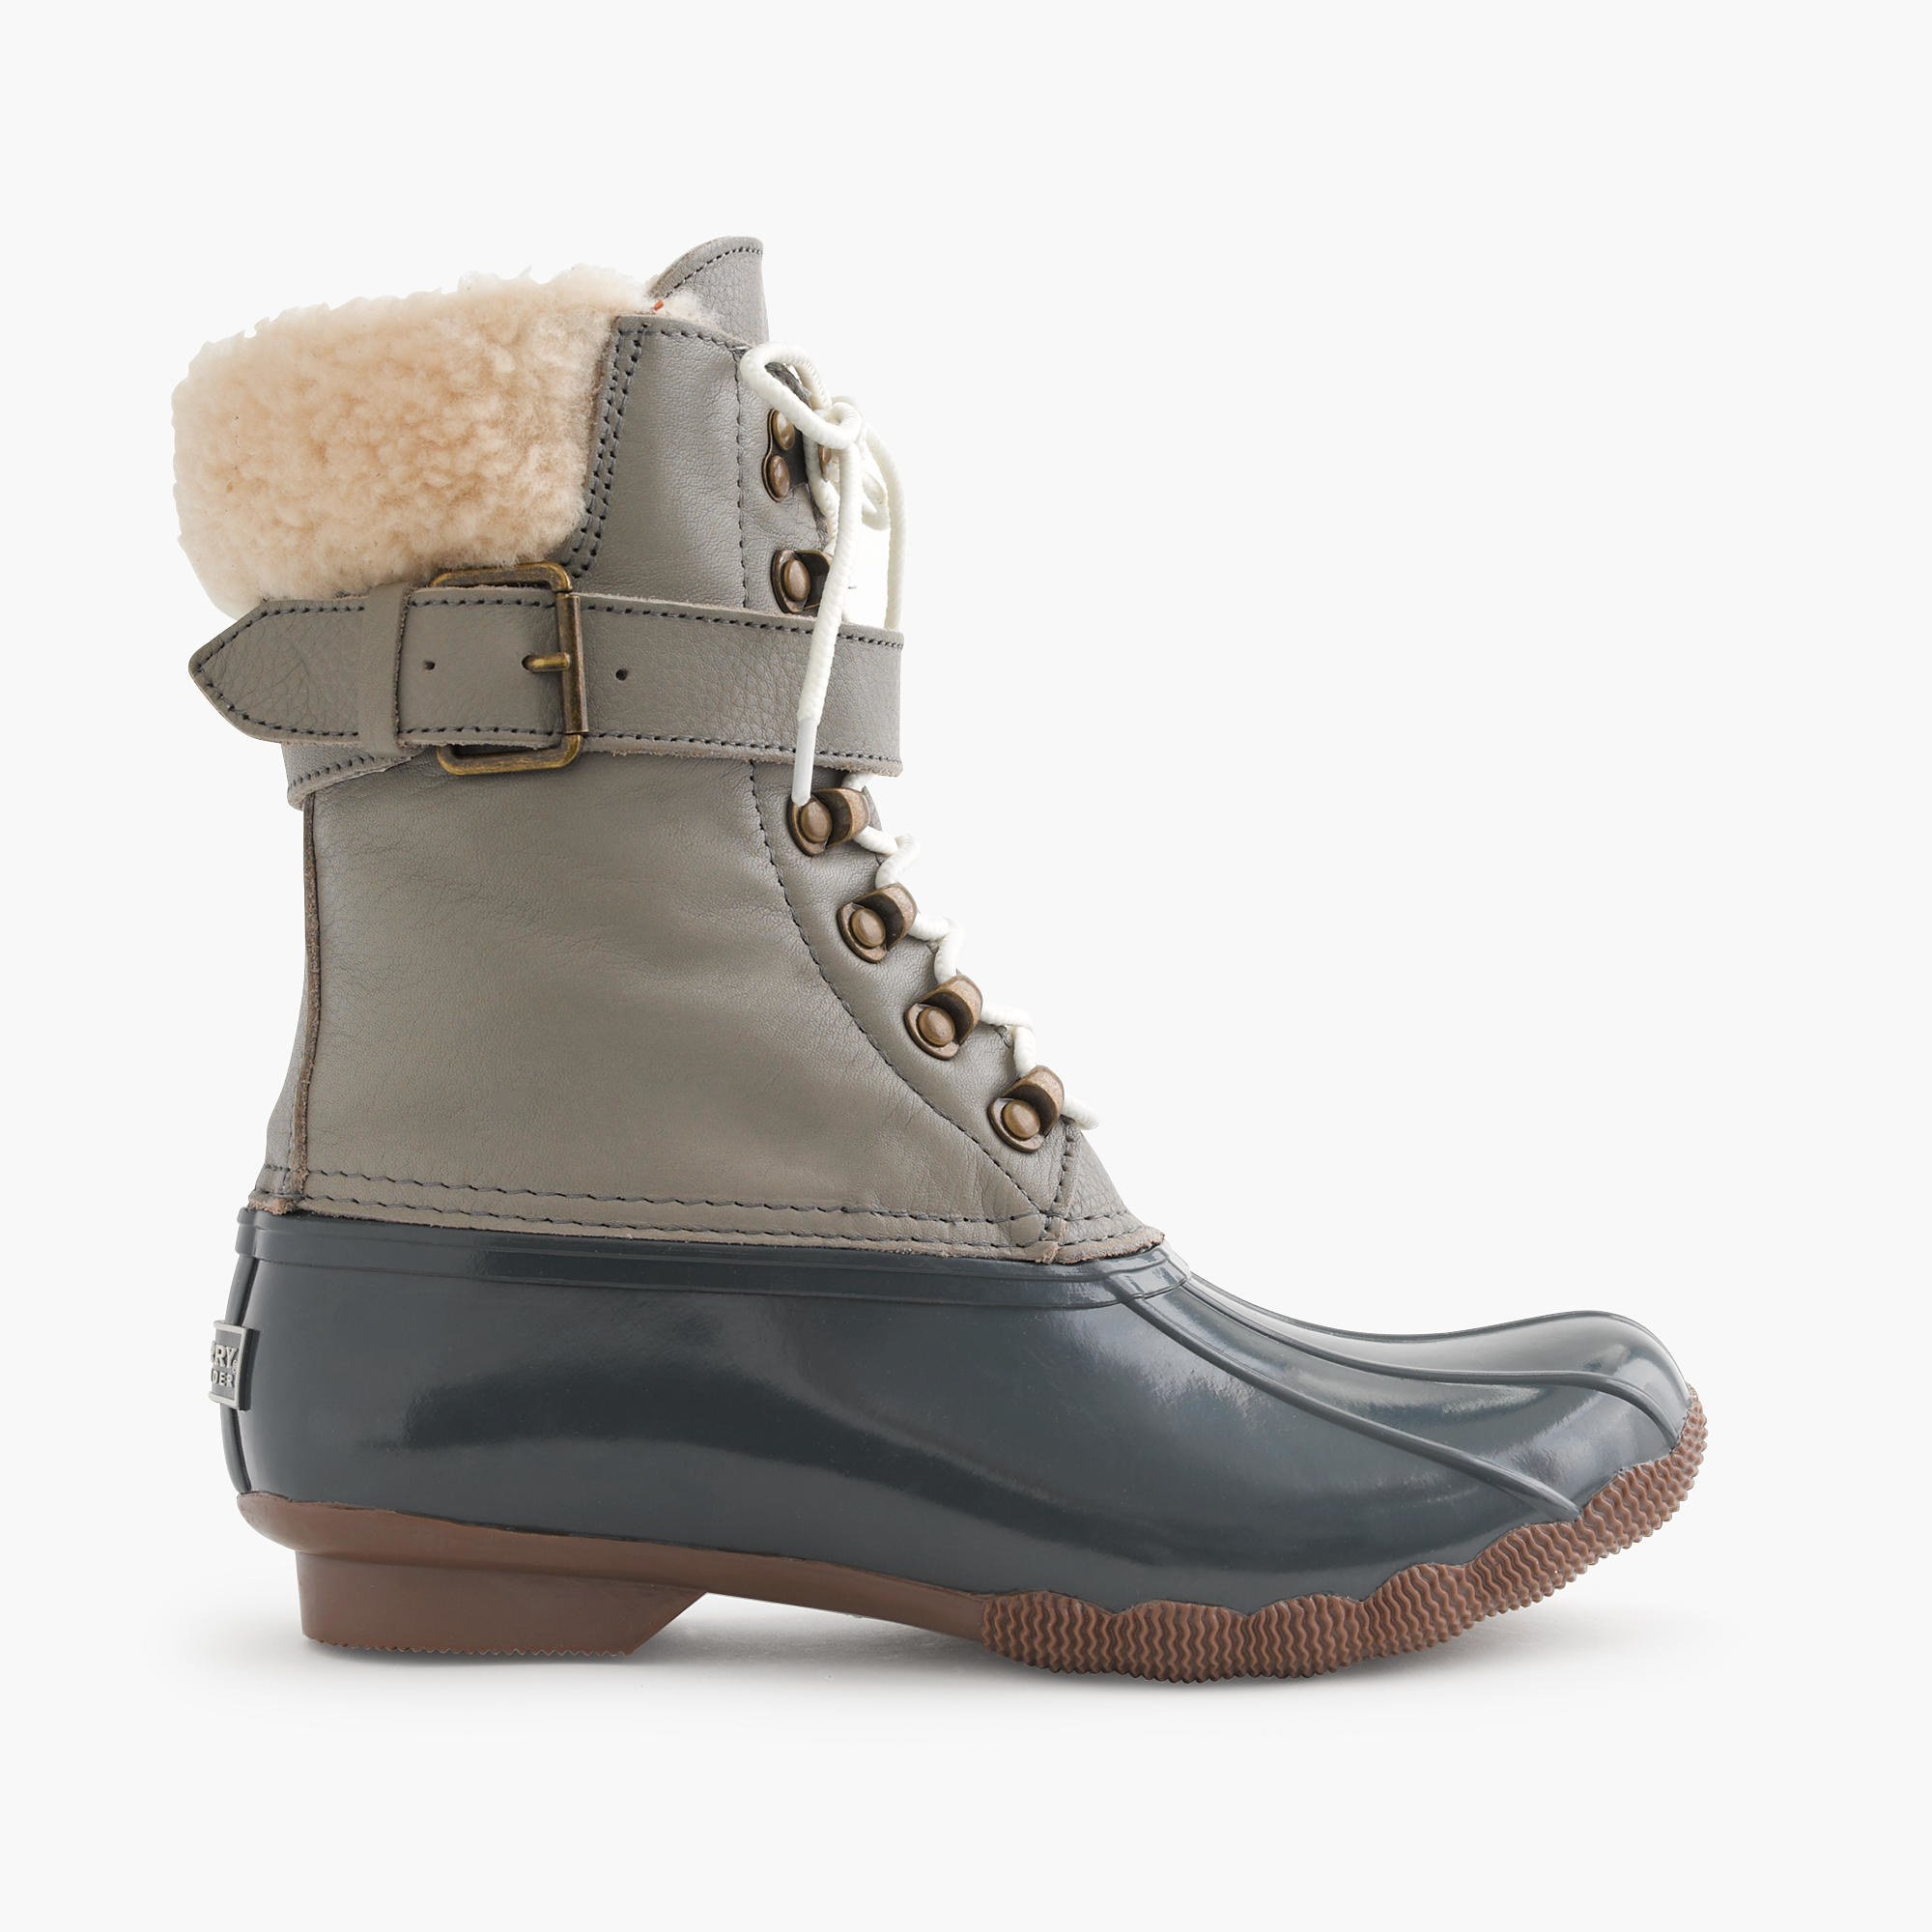 J.crew Sperry Shearwater Water-Resistant Boots in Gray | Lyst